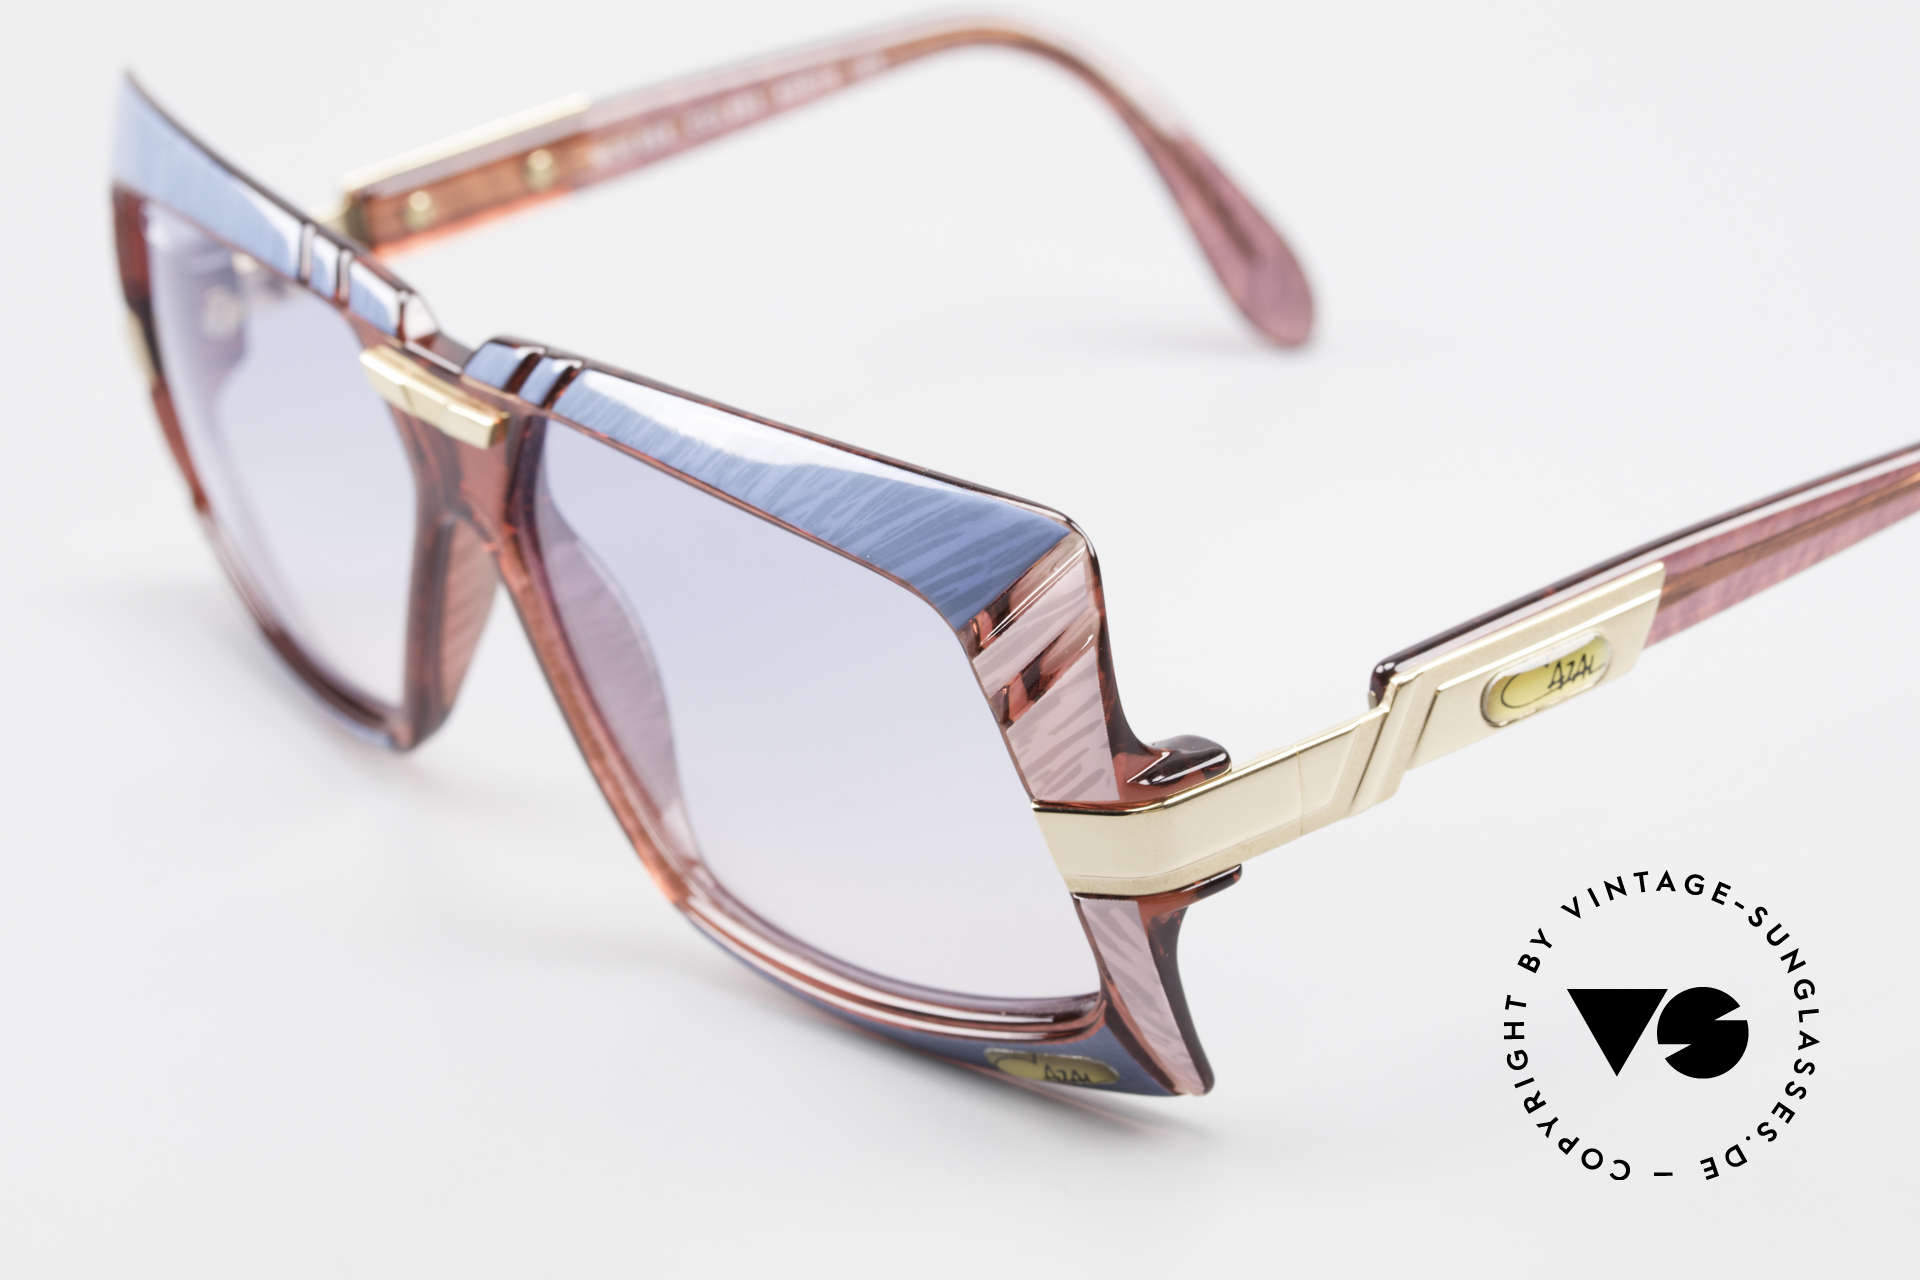 Cazal 869 80's Cazal Designer Shades, outstanding masterpiece by CAri ZALloni; CAZAL, Made for Men and Women